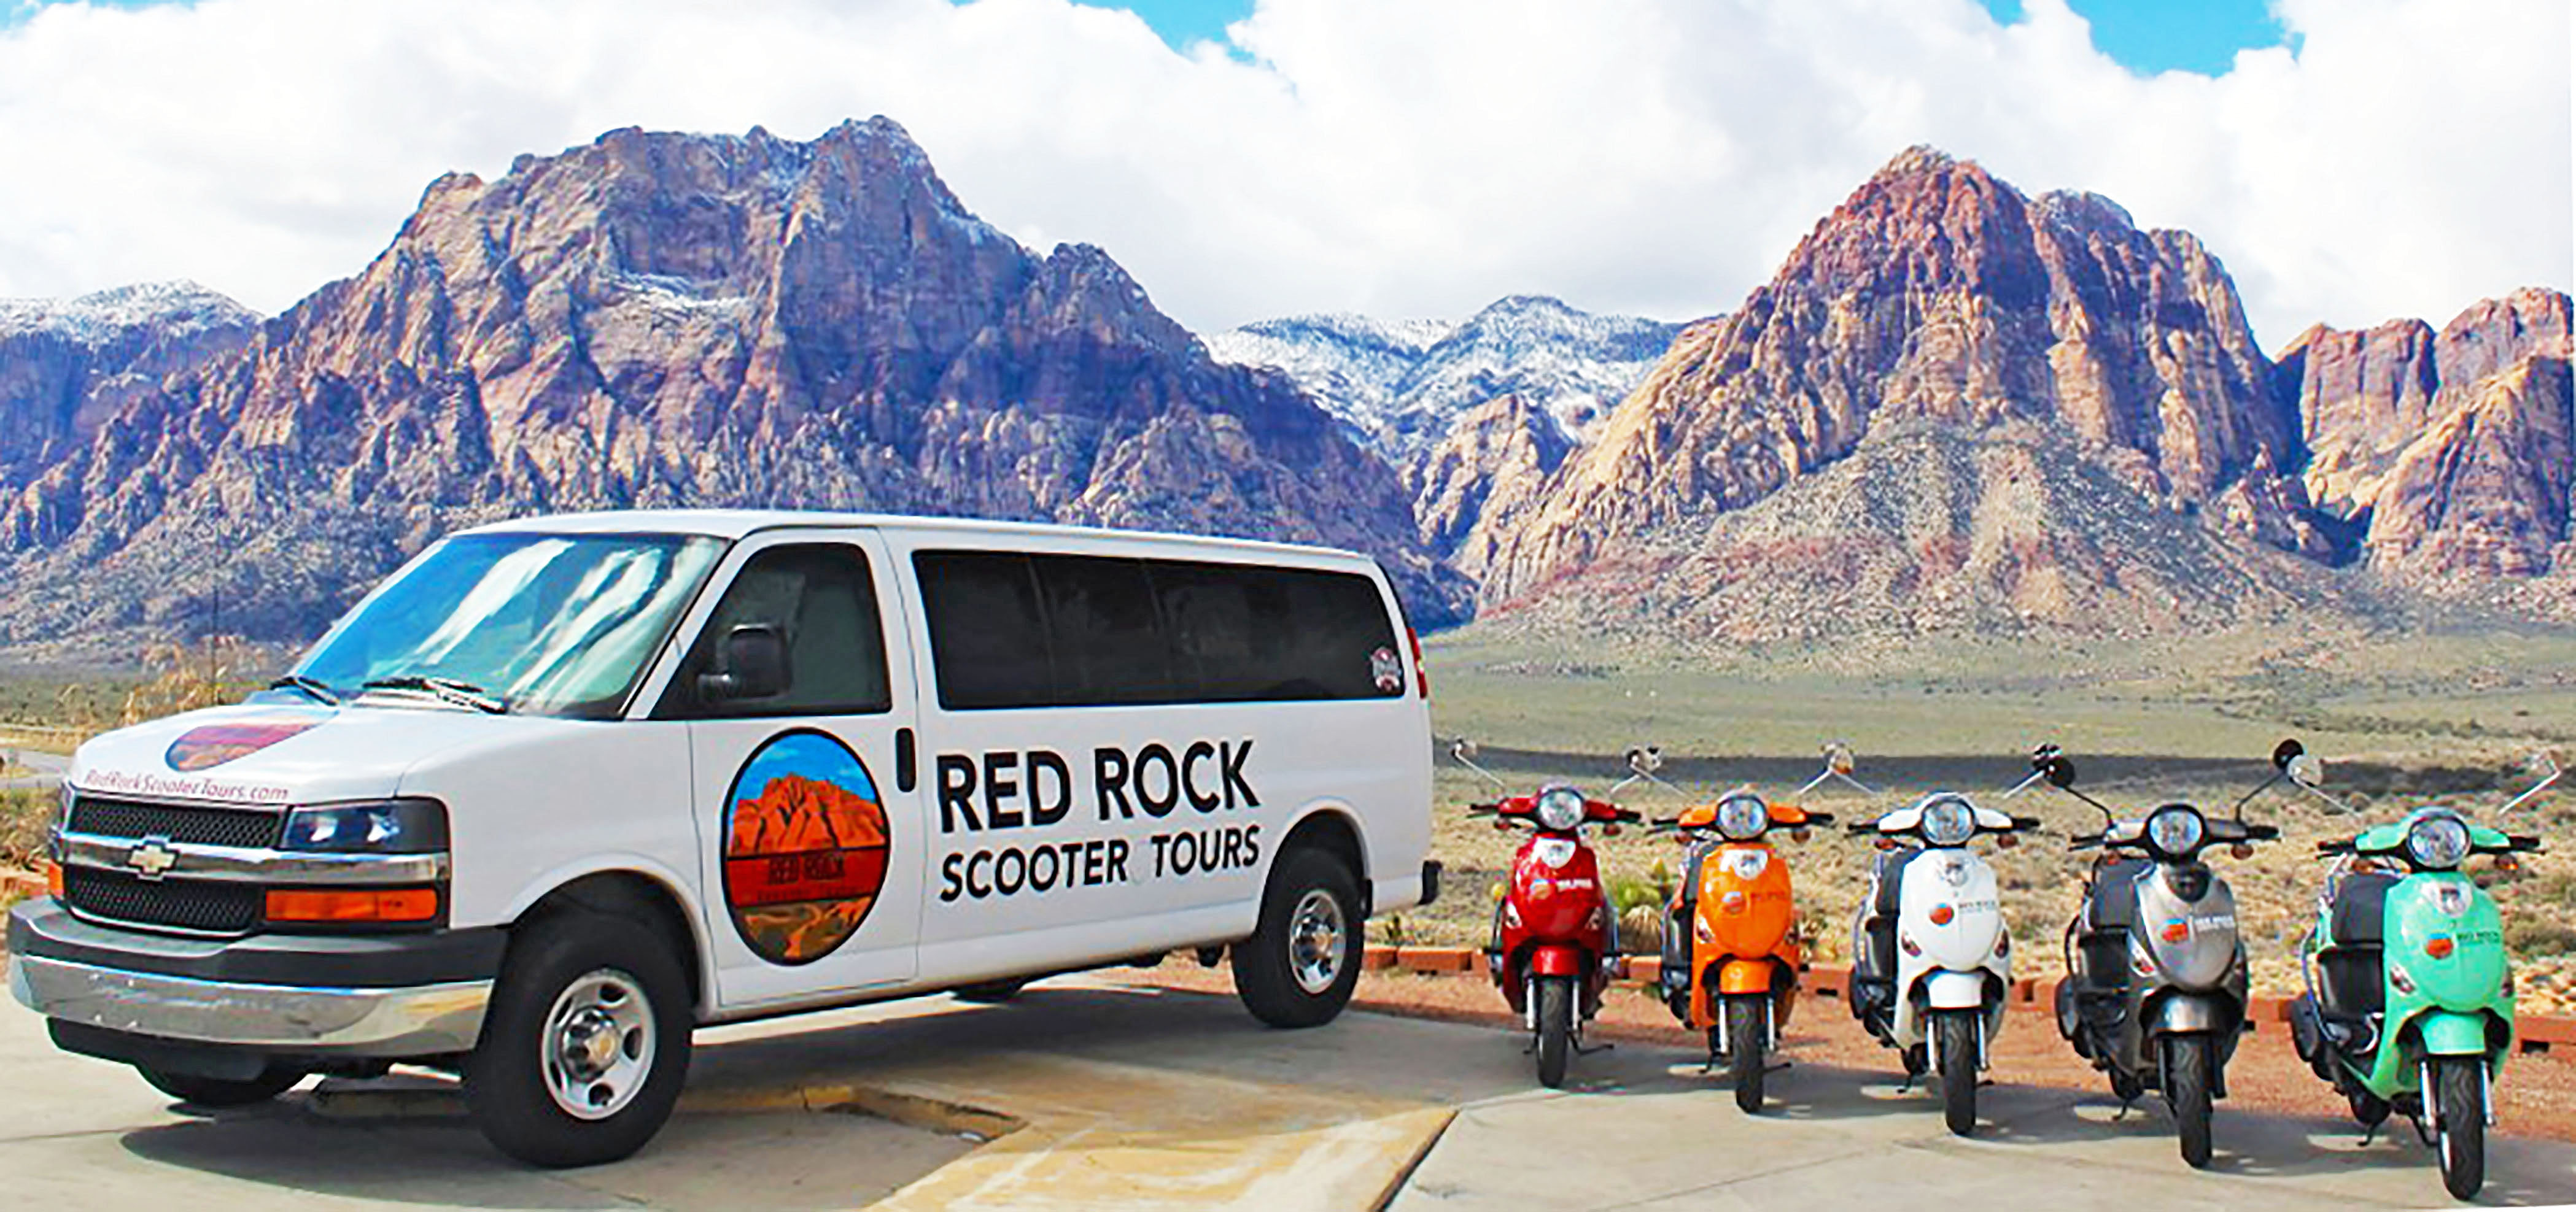 Shuttle buses to red rock casino legends casino concert seating